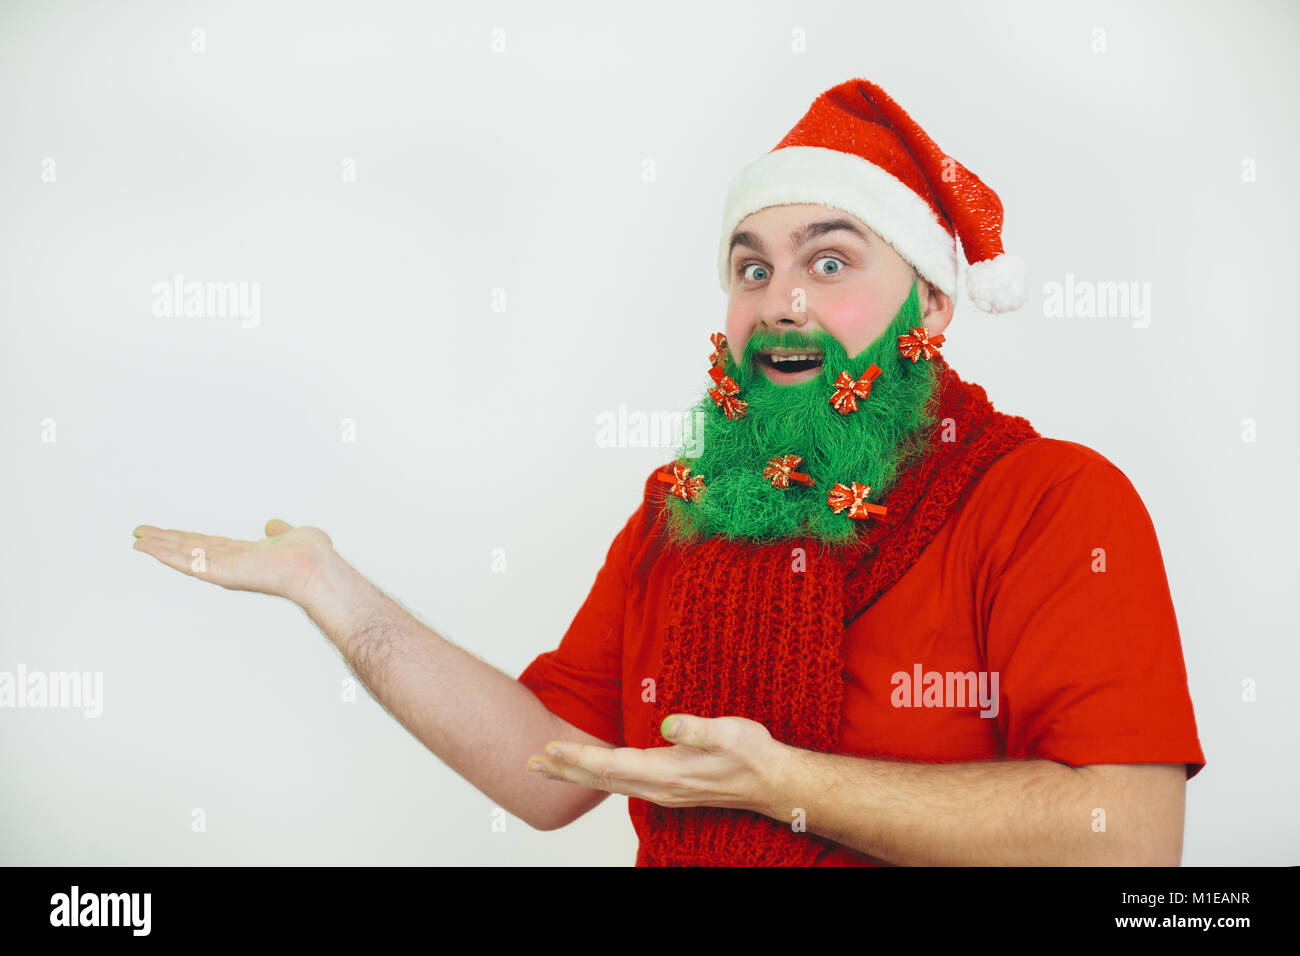 Santa Clause in red clothes with green beard decorated with red bows shows something - Stock Image